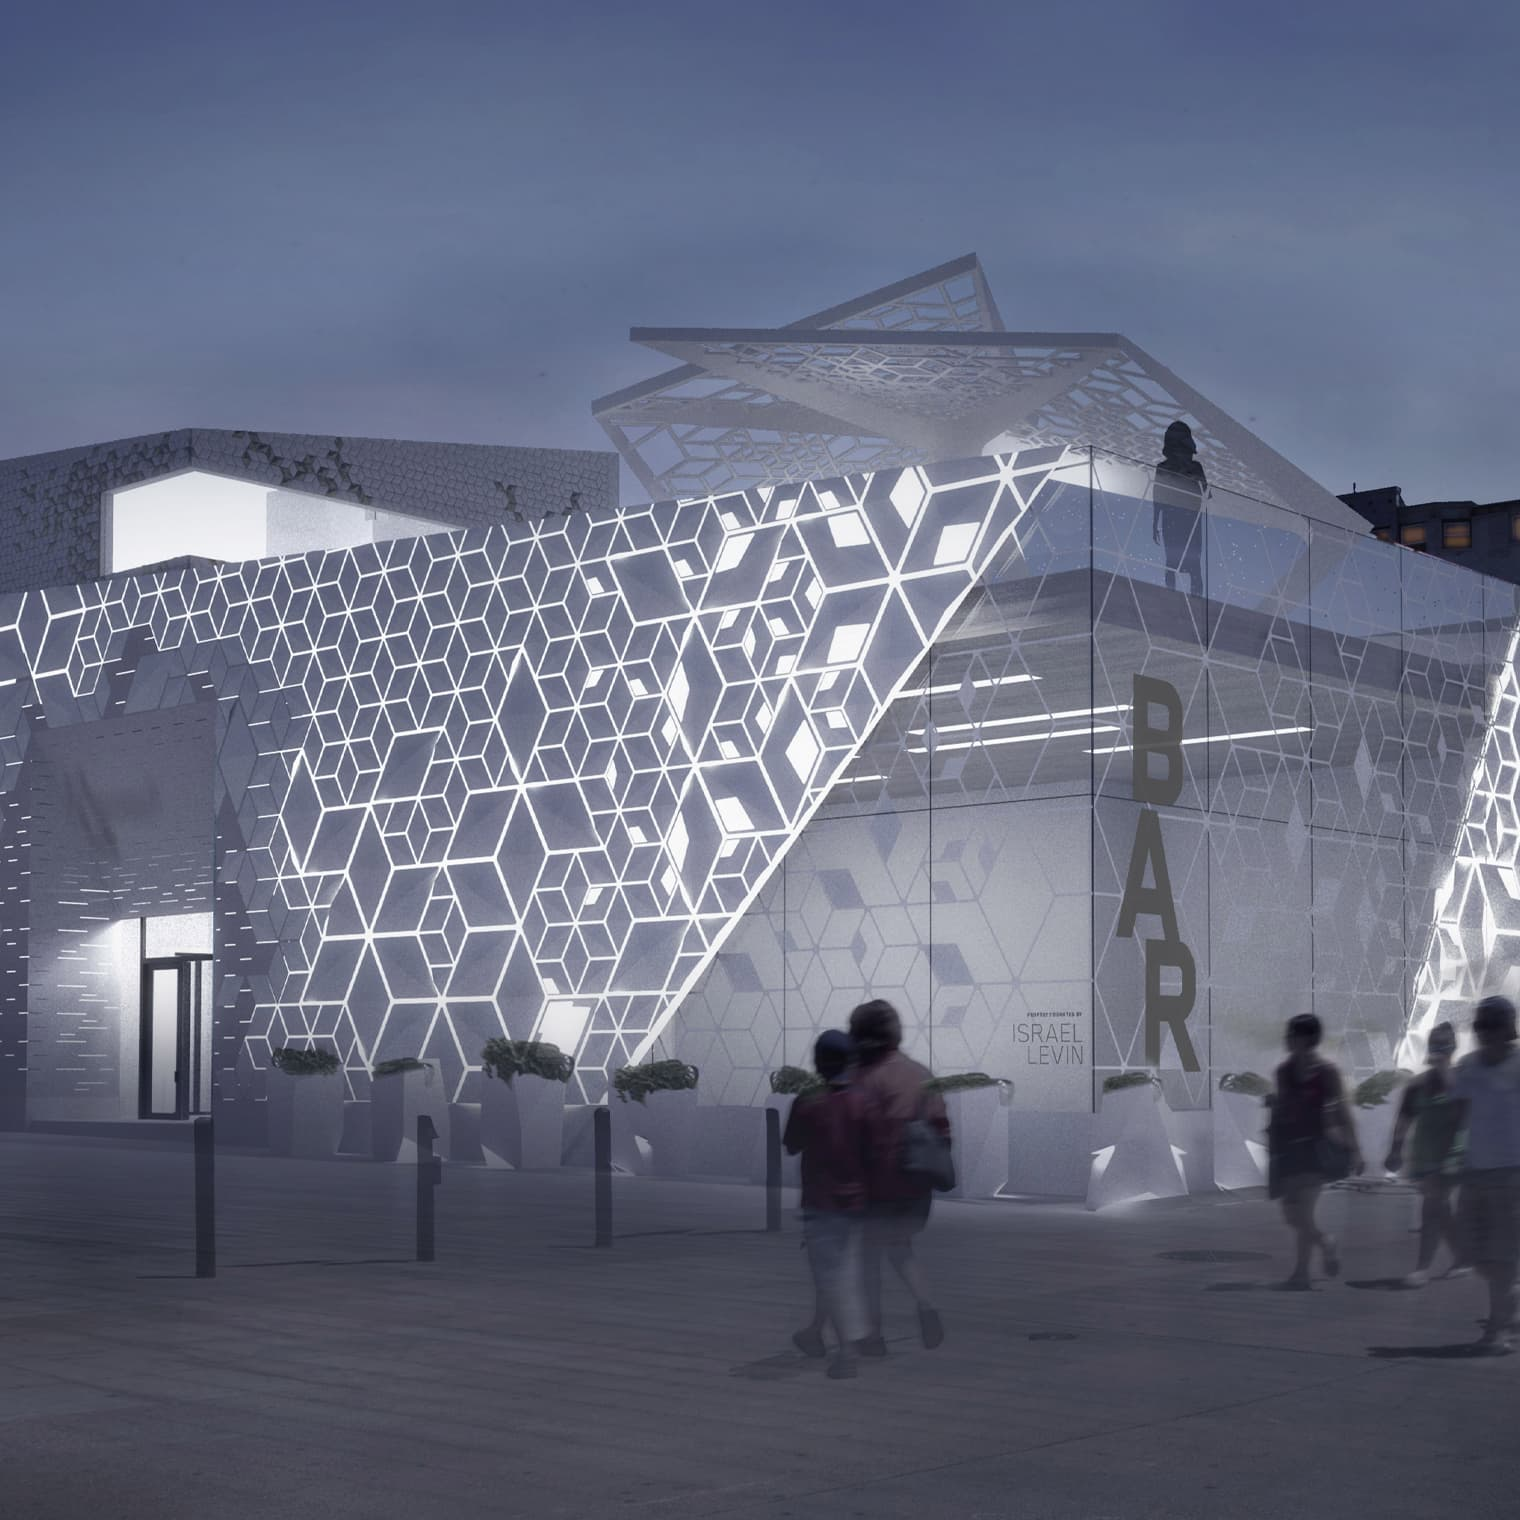 Evening rendering of The BAR Center at the Beach in Venice, California